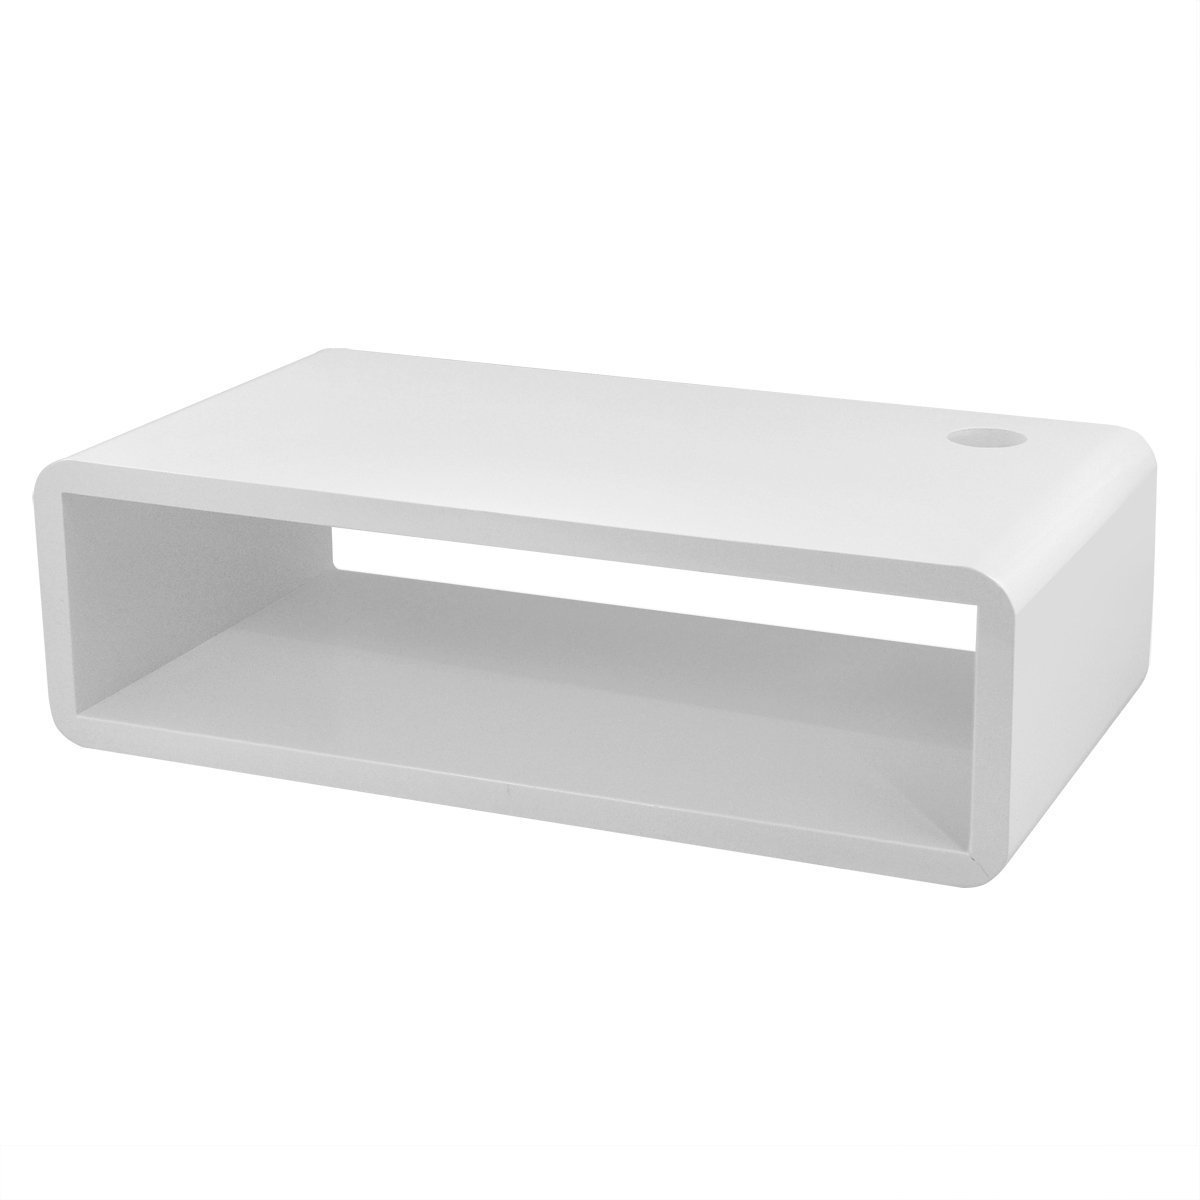 top home solutions floating mfd wall mount shelf cube skybox dvd hifi units shelves white kitchen matt large shoe rack ikea melbourne desk computer peel and stick decals long